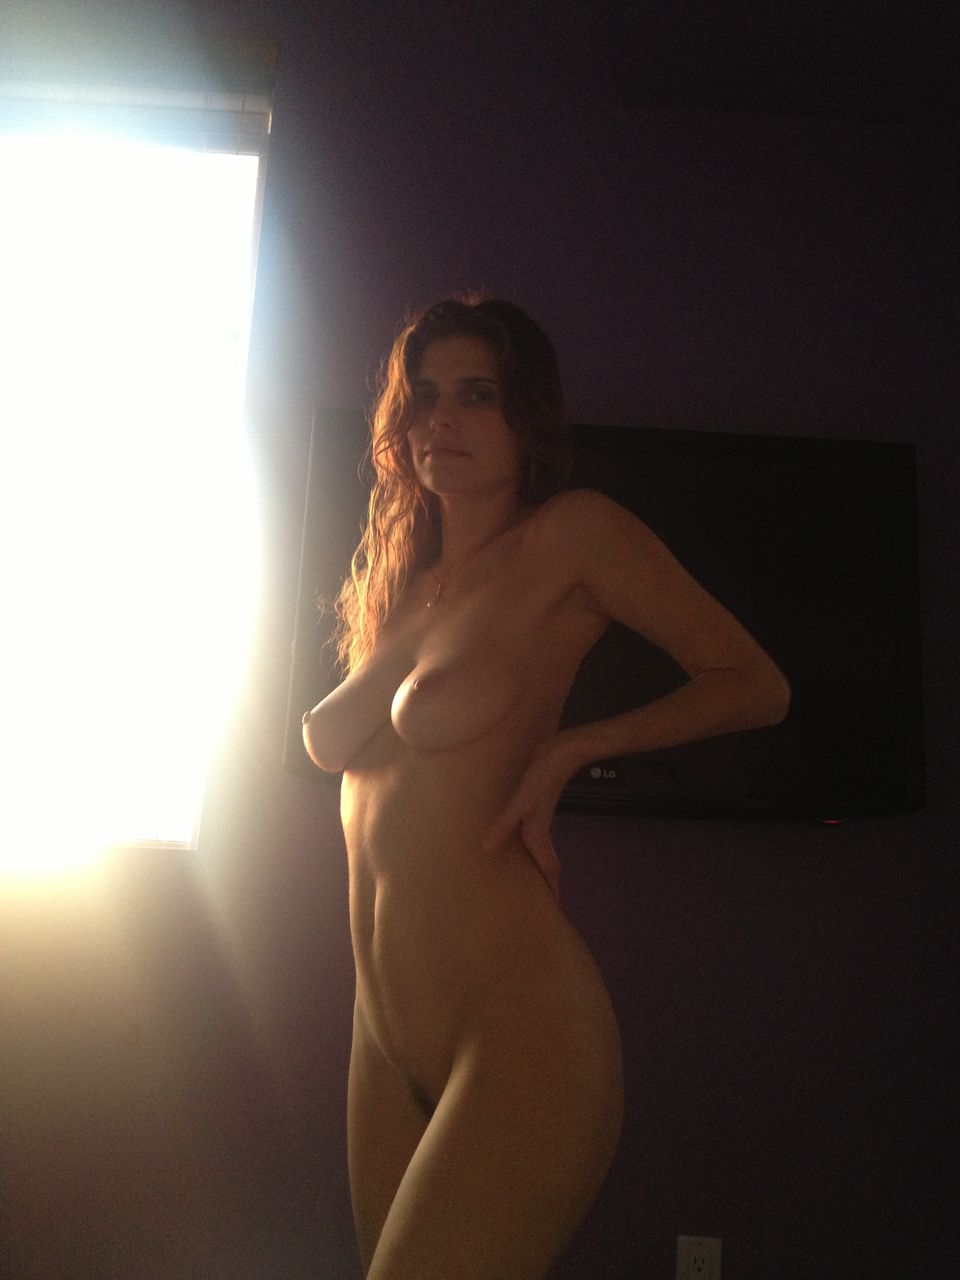 Lake Bell nude leaked pic showing off her hot body!